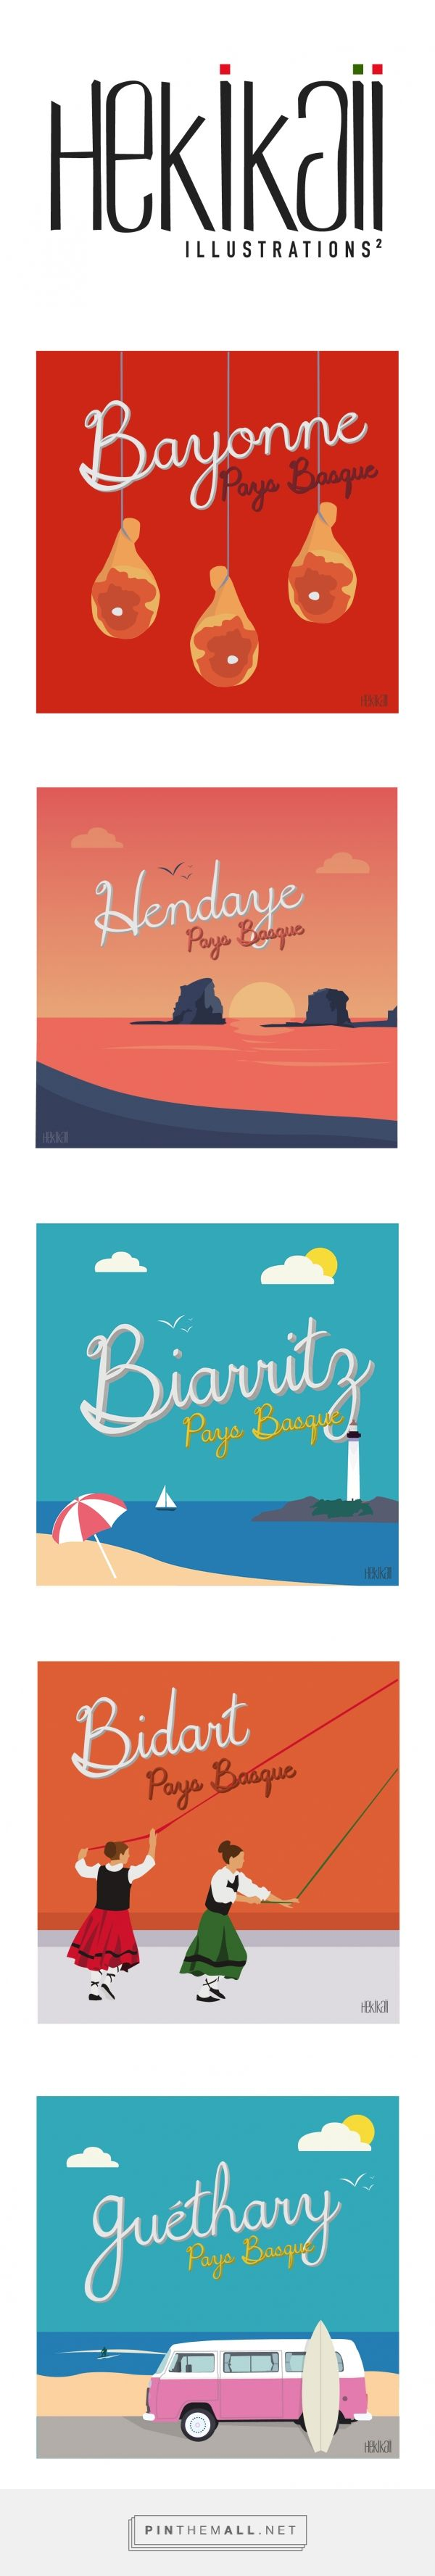 5 Cartes Postales Pays Basque | Hekikaii Illustrations    #cartepostale #illustration #vacances #paysbasque #ocean #surf - created via https://pinthemall.net